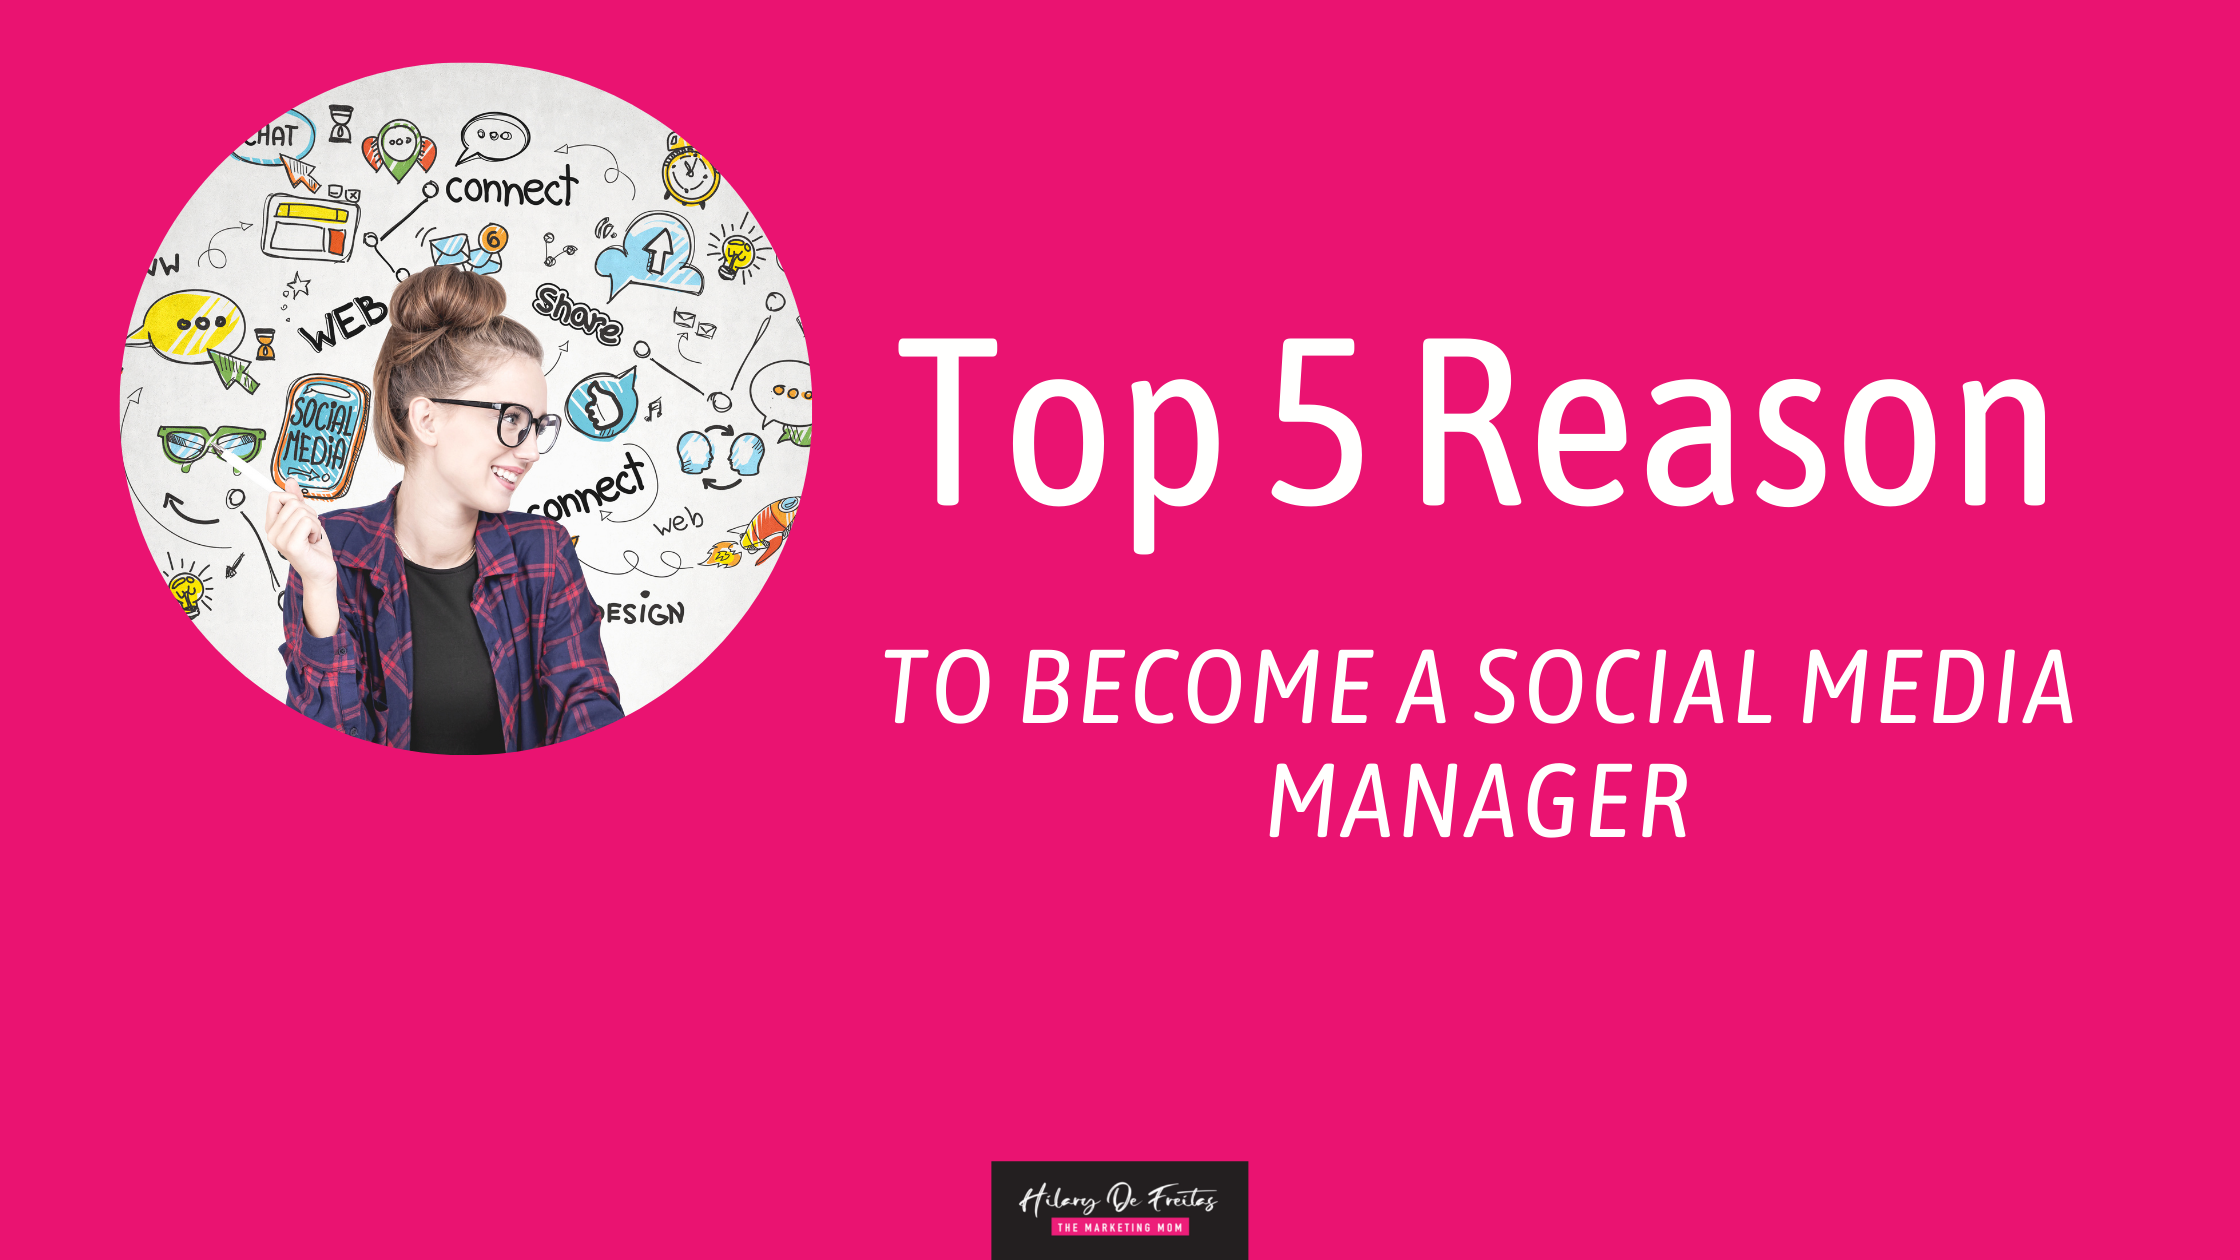 Top 5 Reasons to Become a Social Media Manager